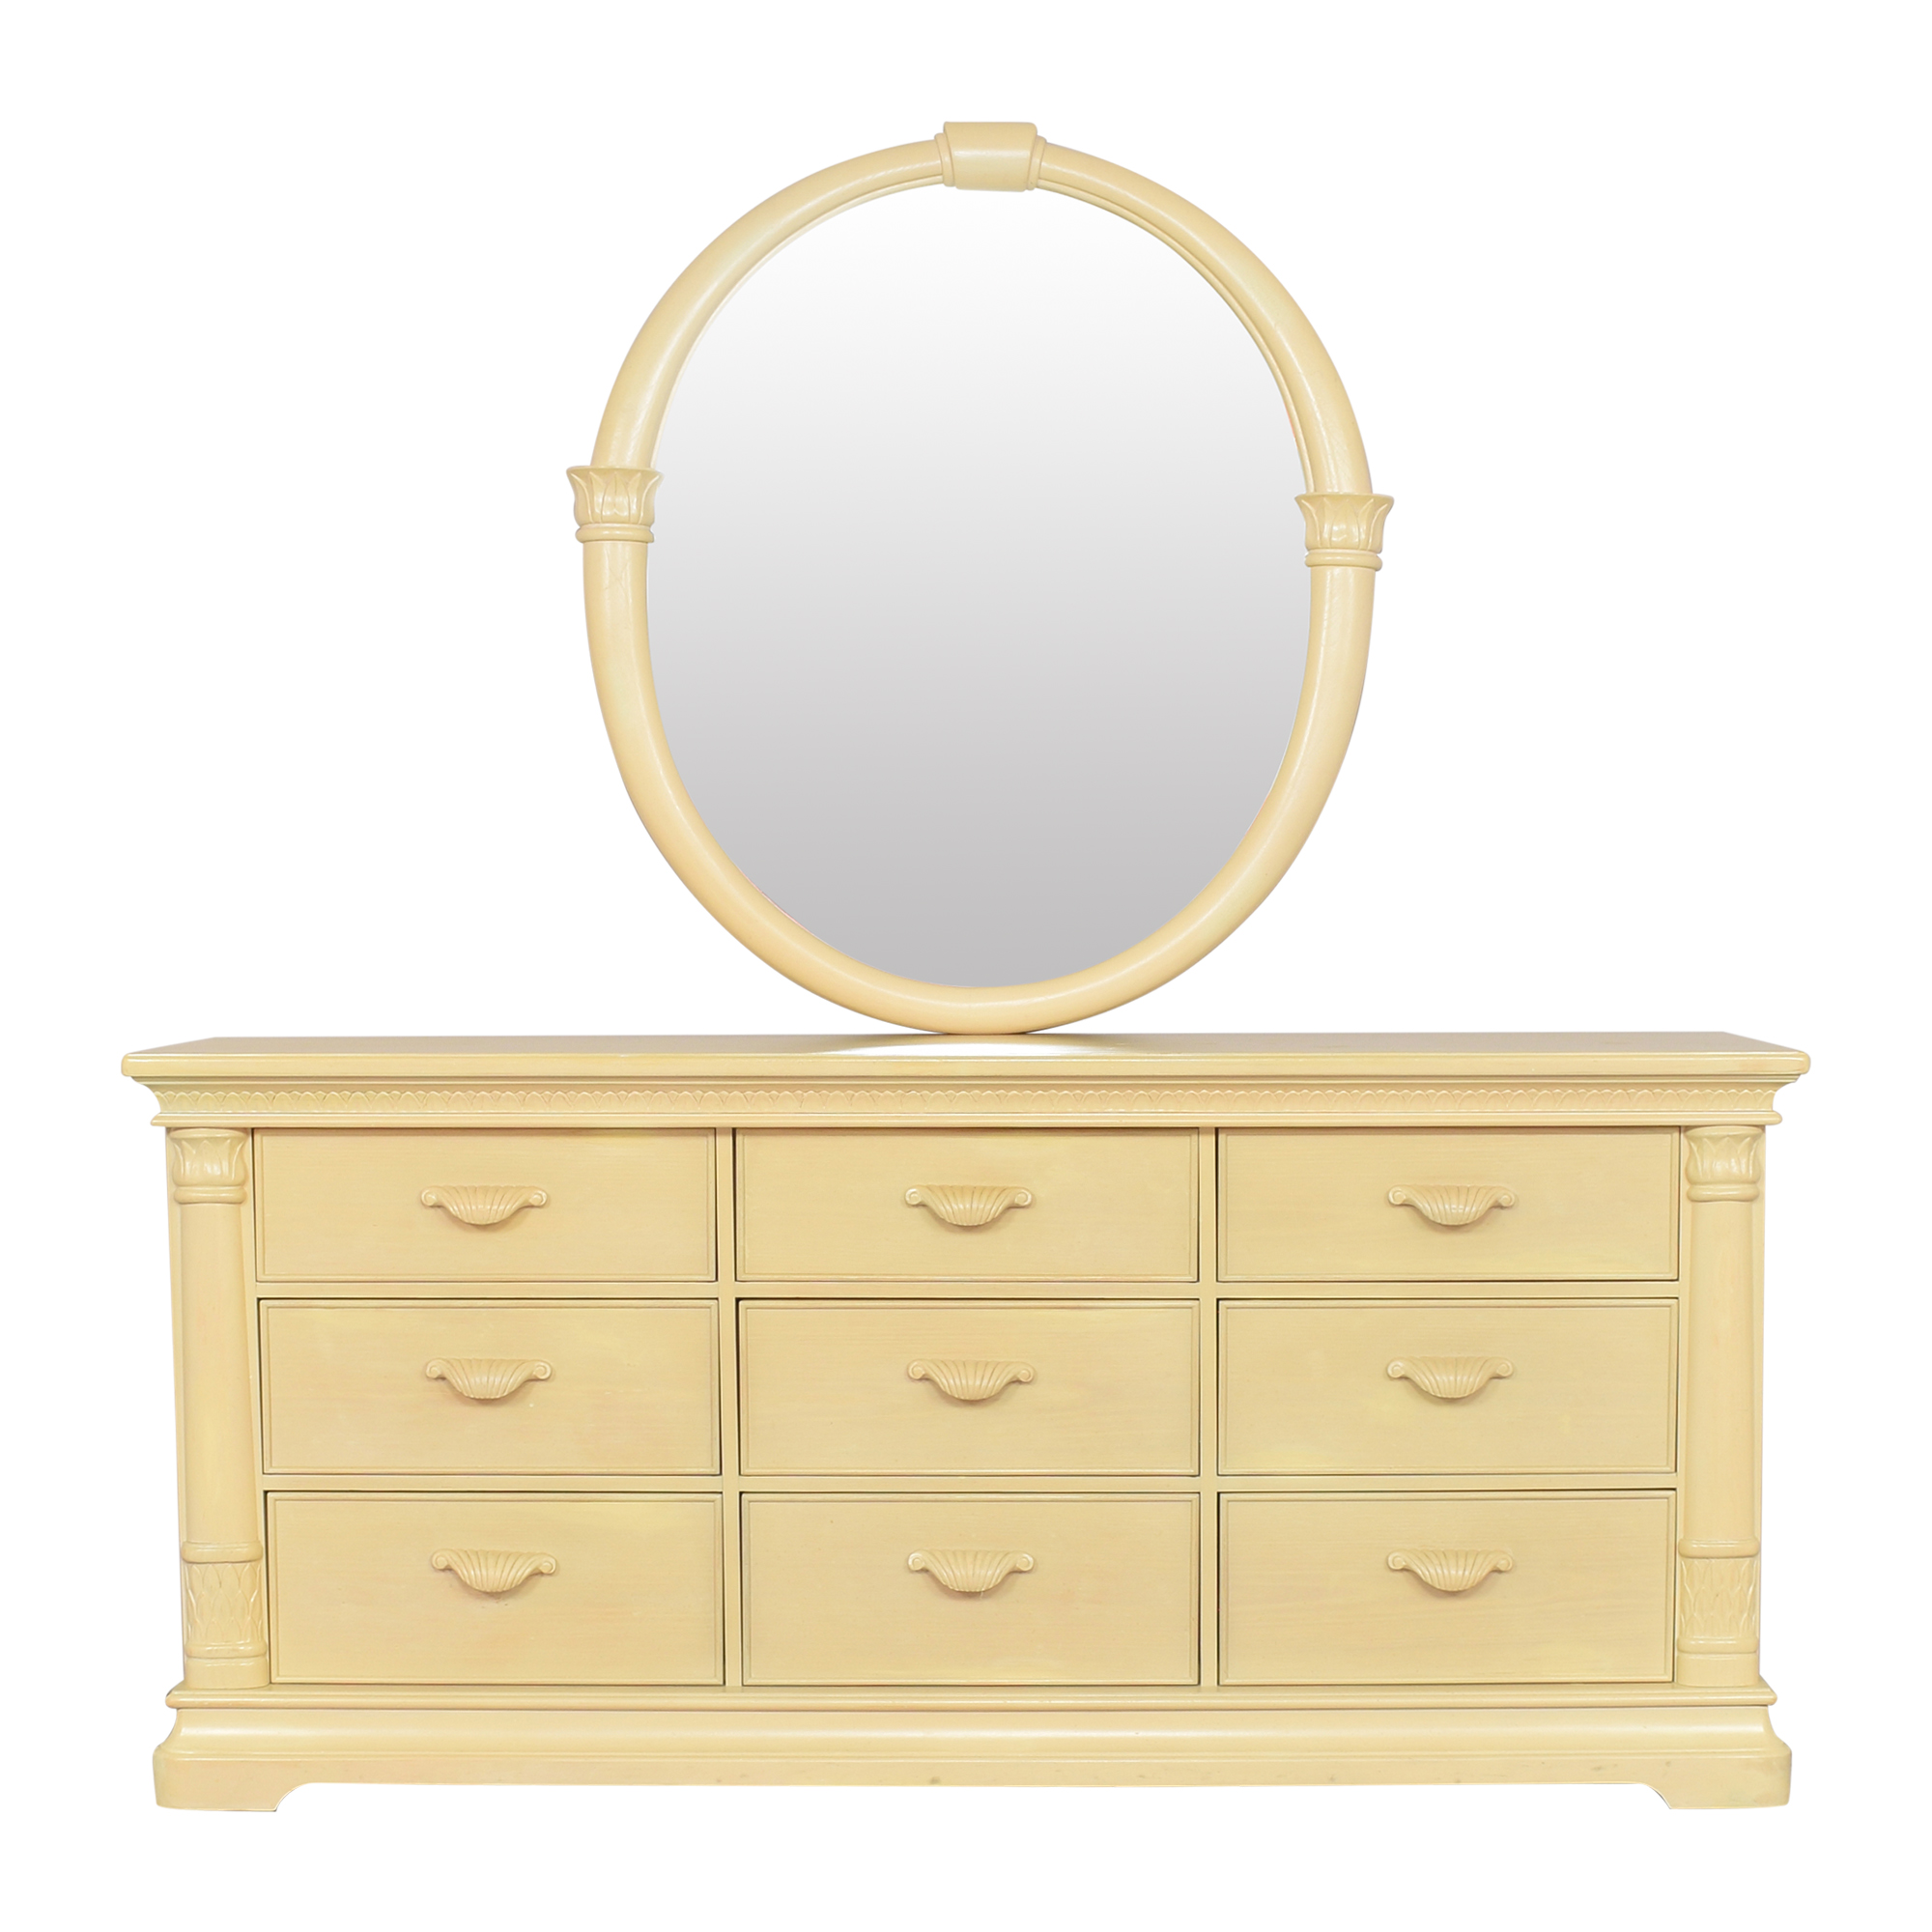 Bernhardt Bernhardt Nine Drawer Dresser with Mirror price